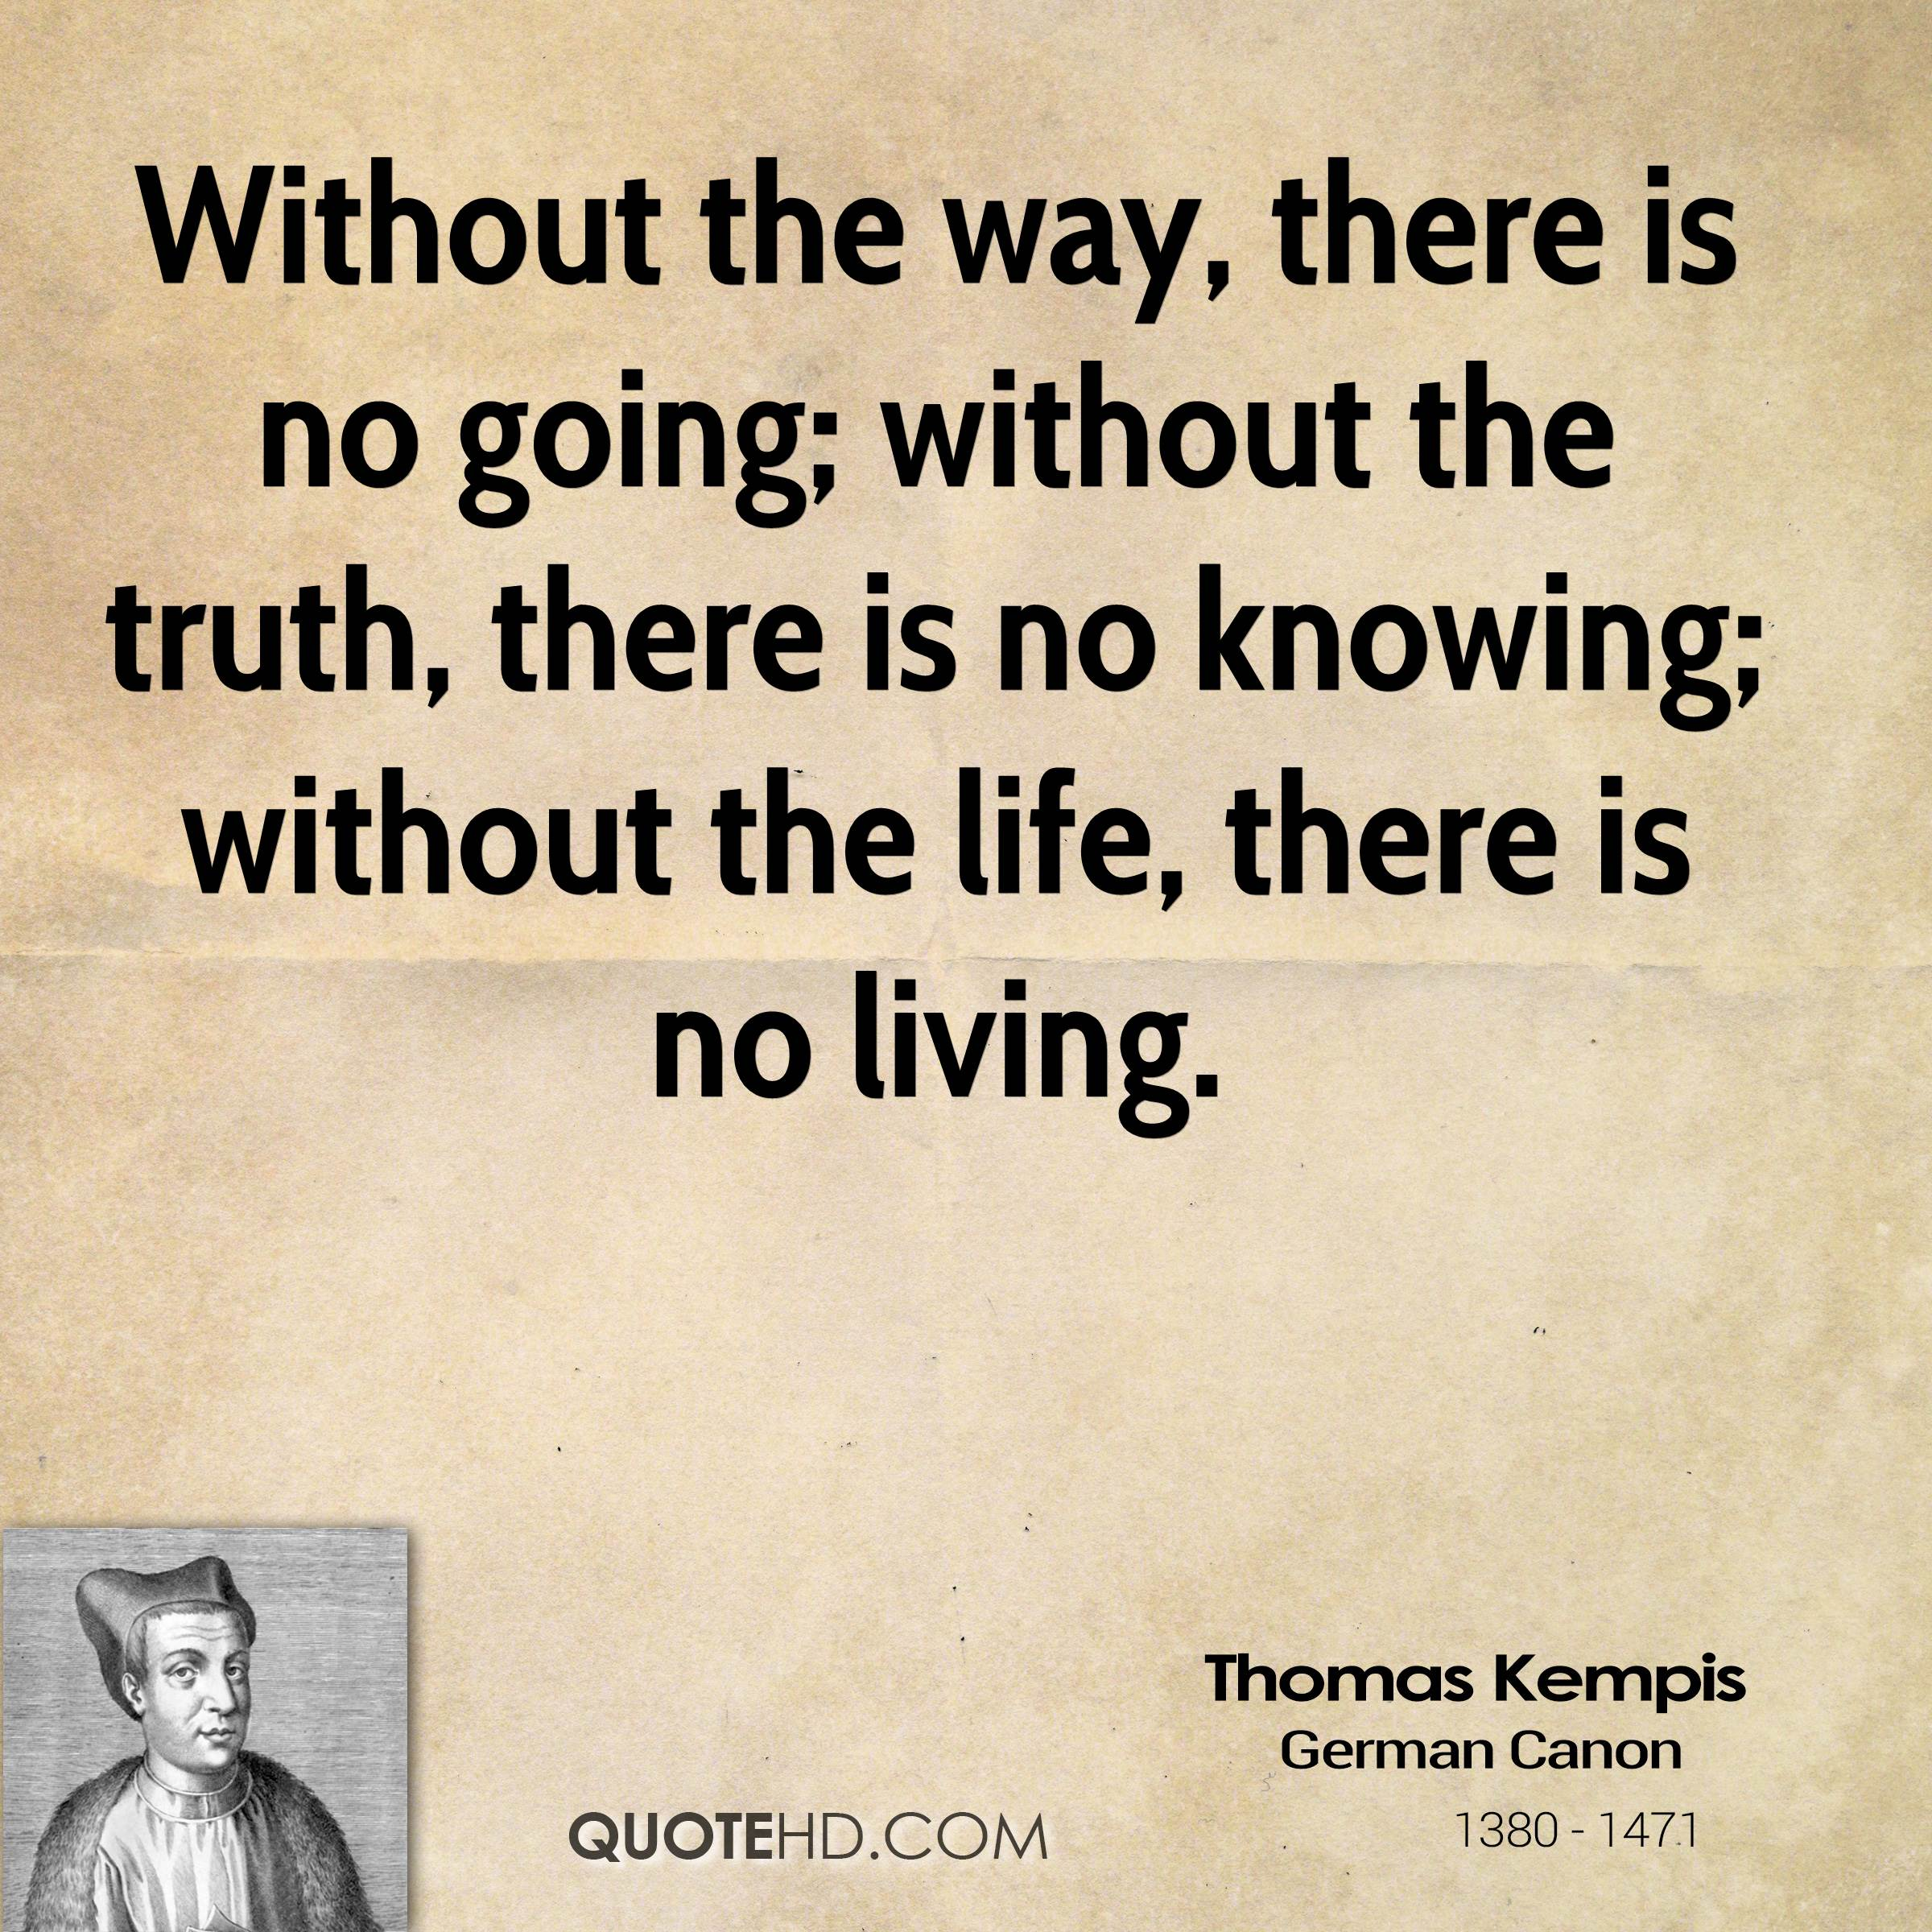 Without the way, there is no going; without the truth, there is no knowing; without the life, there is no living.